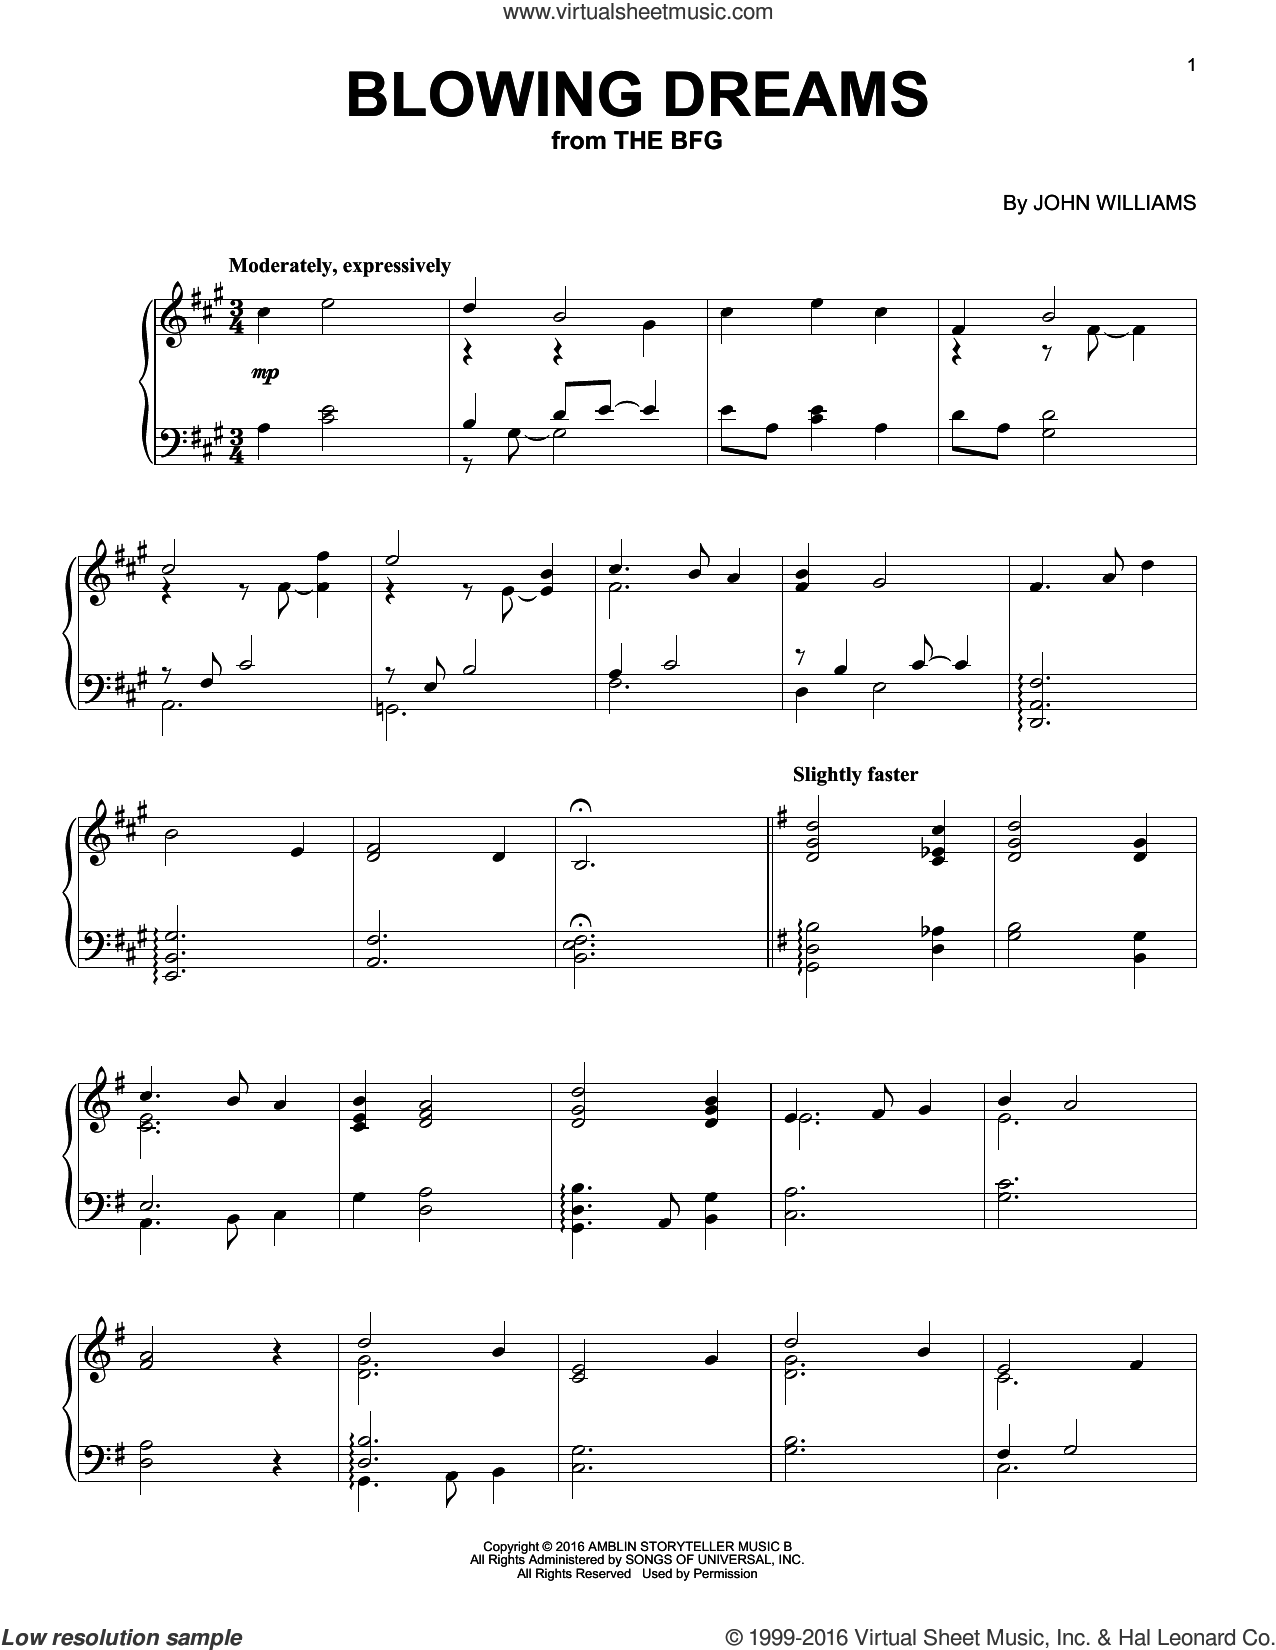 Blowing Dreams sheet music for piano solo by John Williams. Score Image Preview.